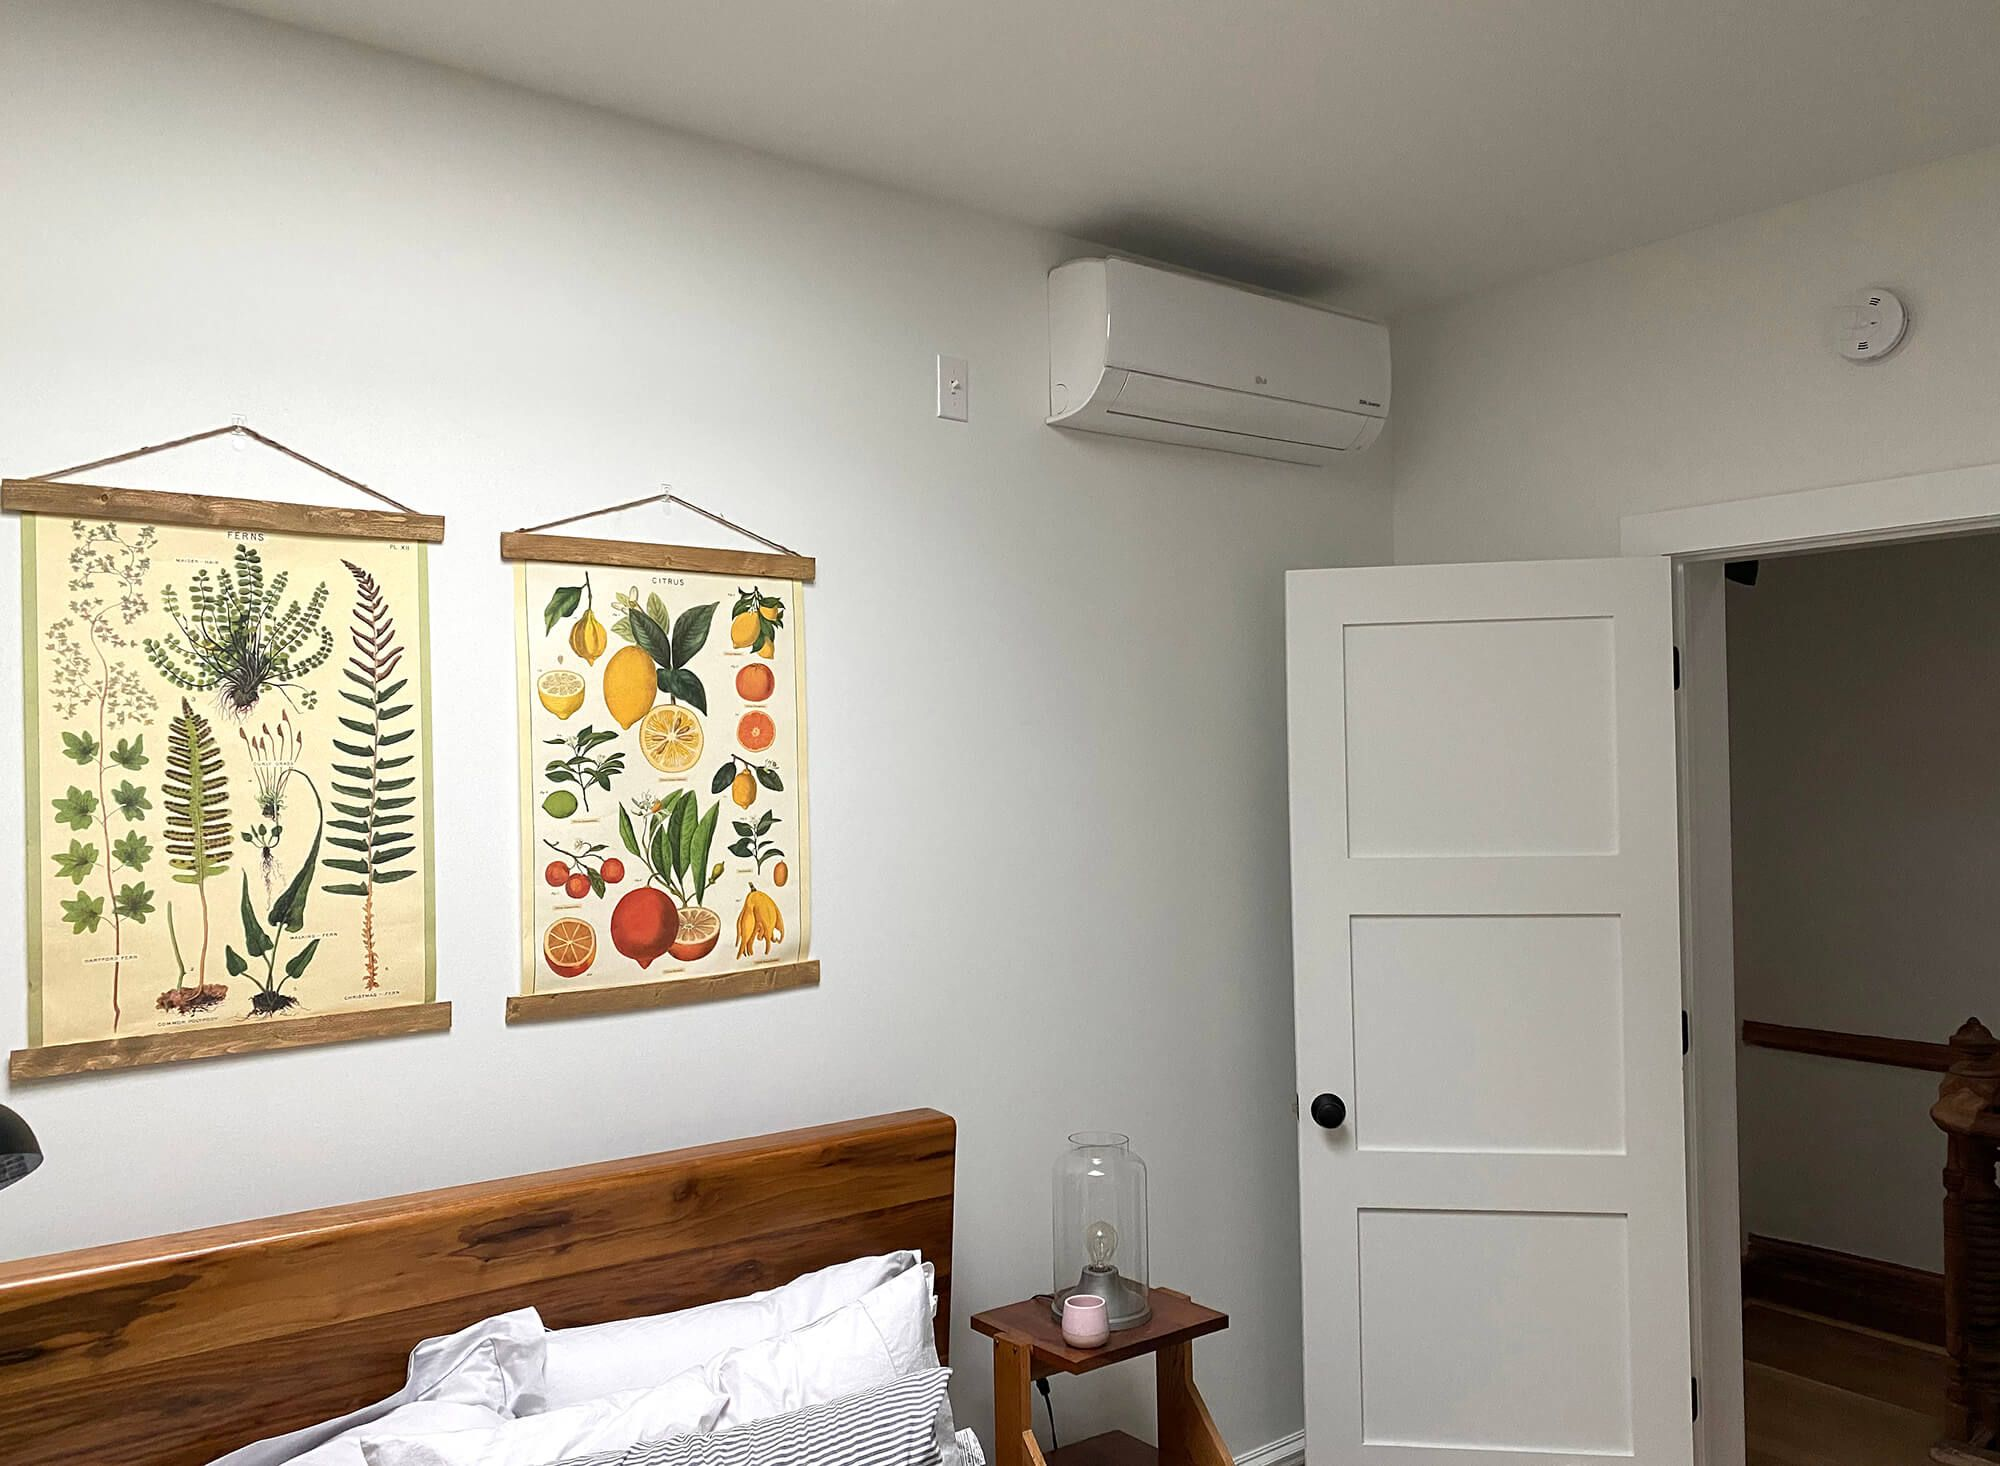 Brownstone Boys Heating and Cooling Options to Consider